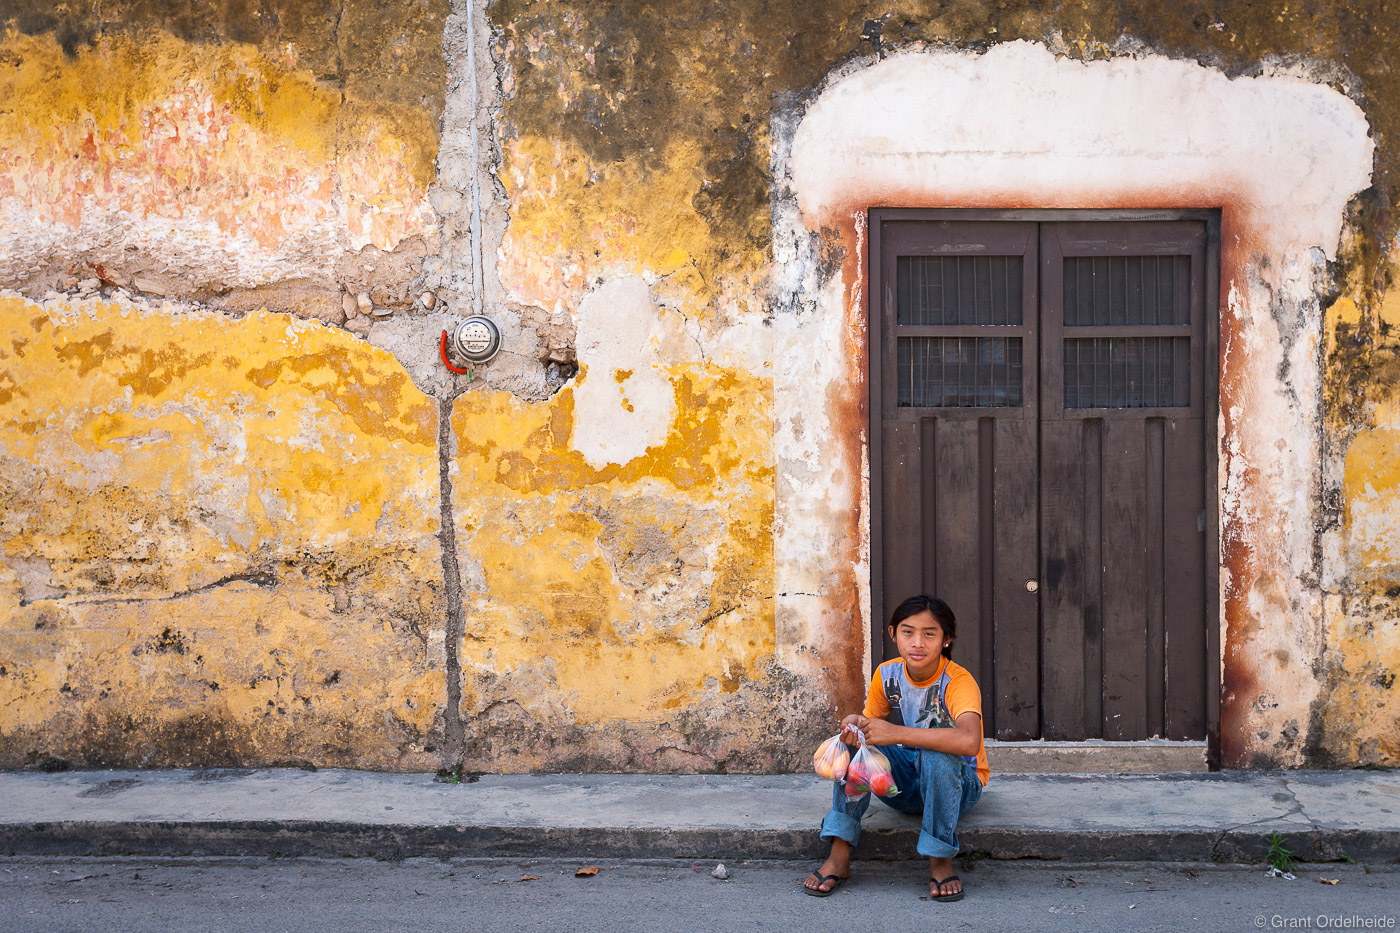 A young boy in Izamal Mexico.